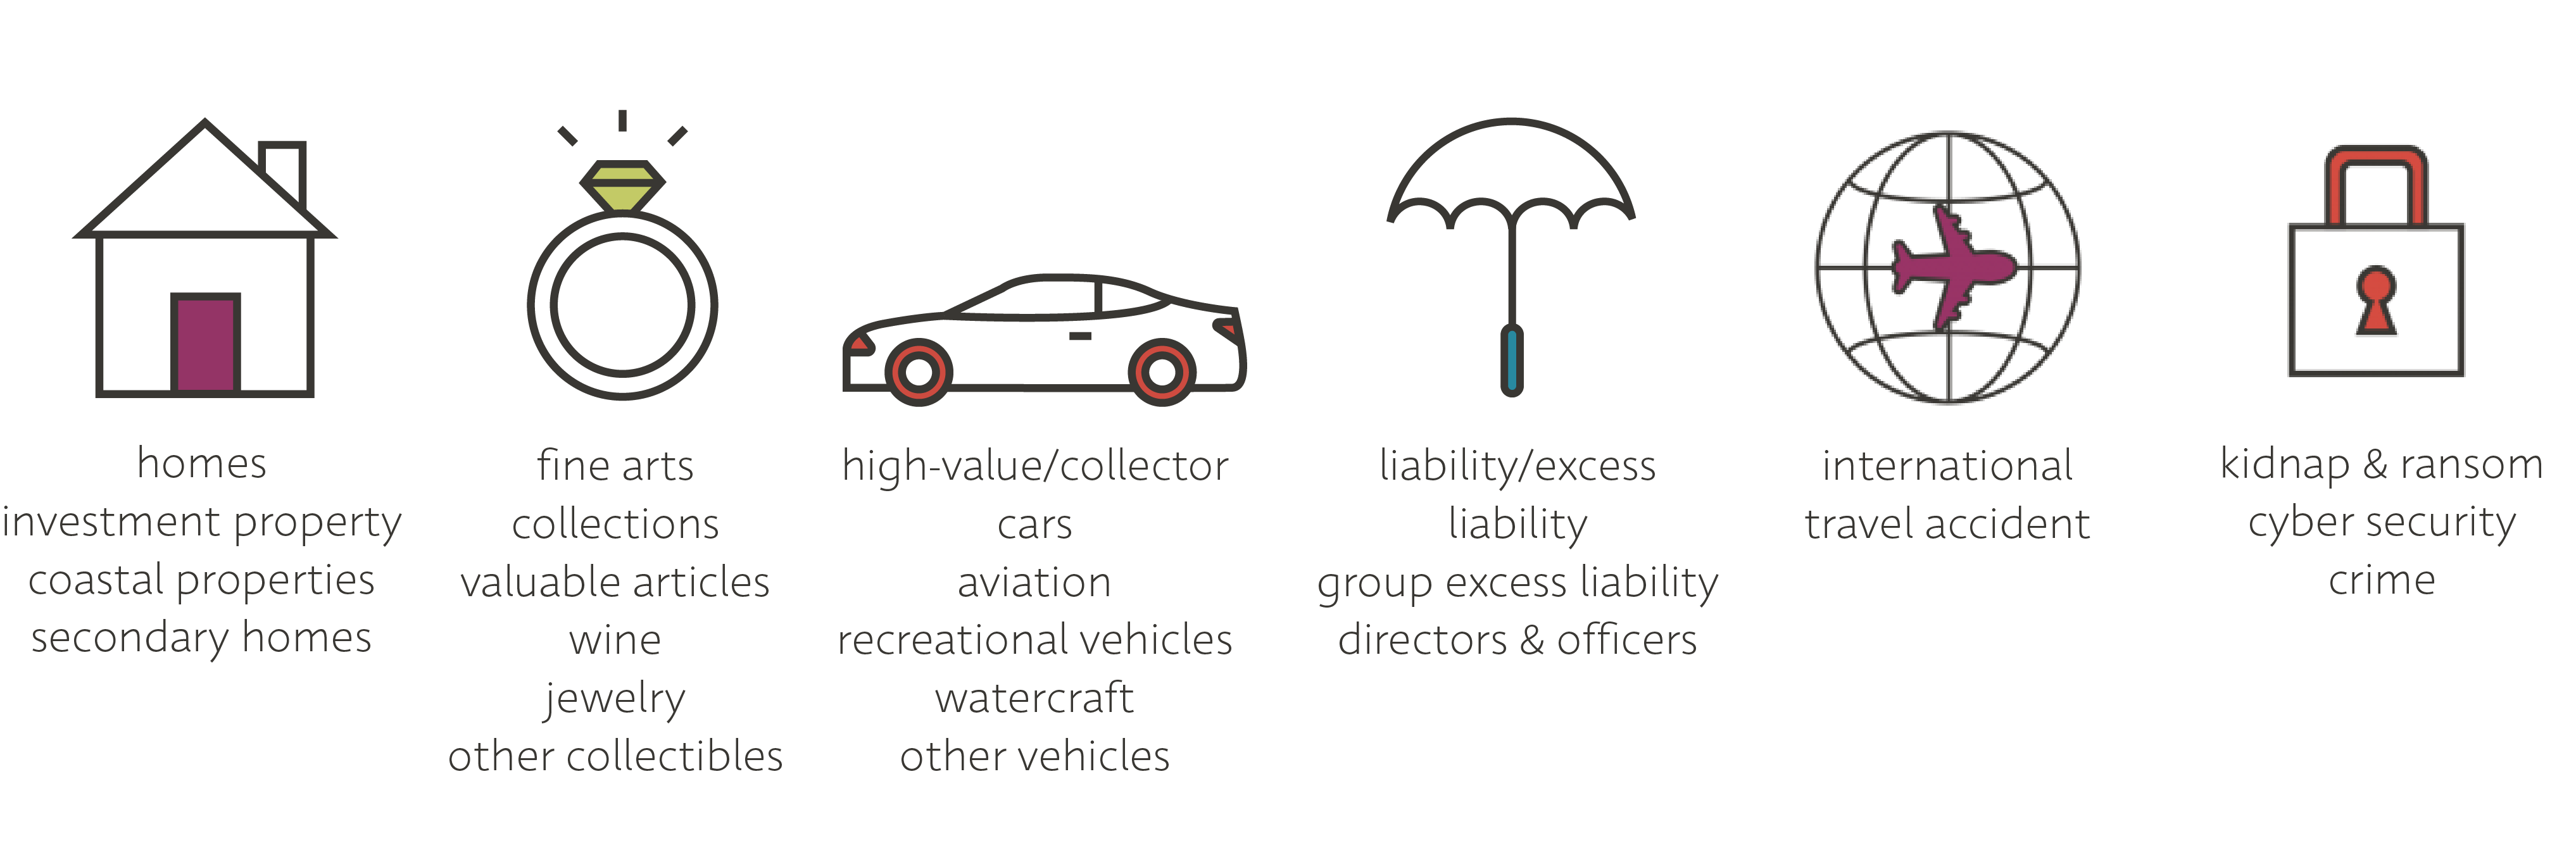 Insurance coverage graphics.